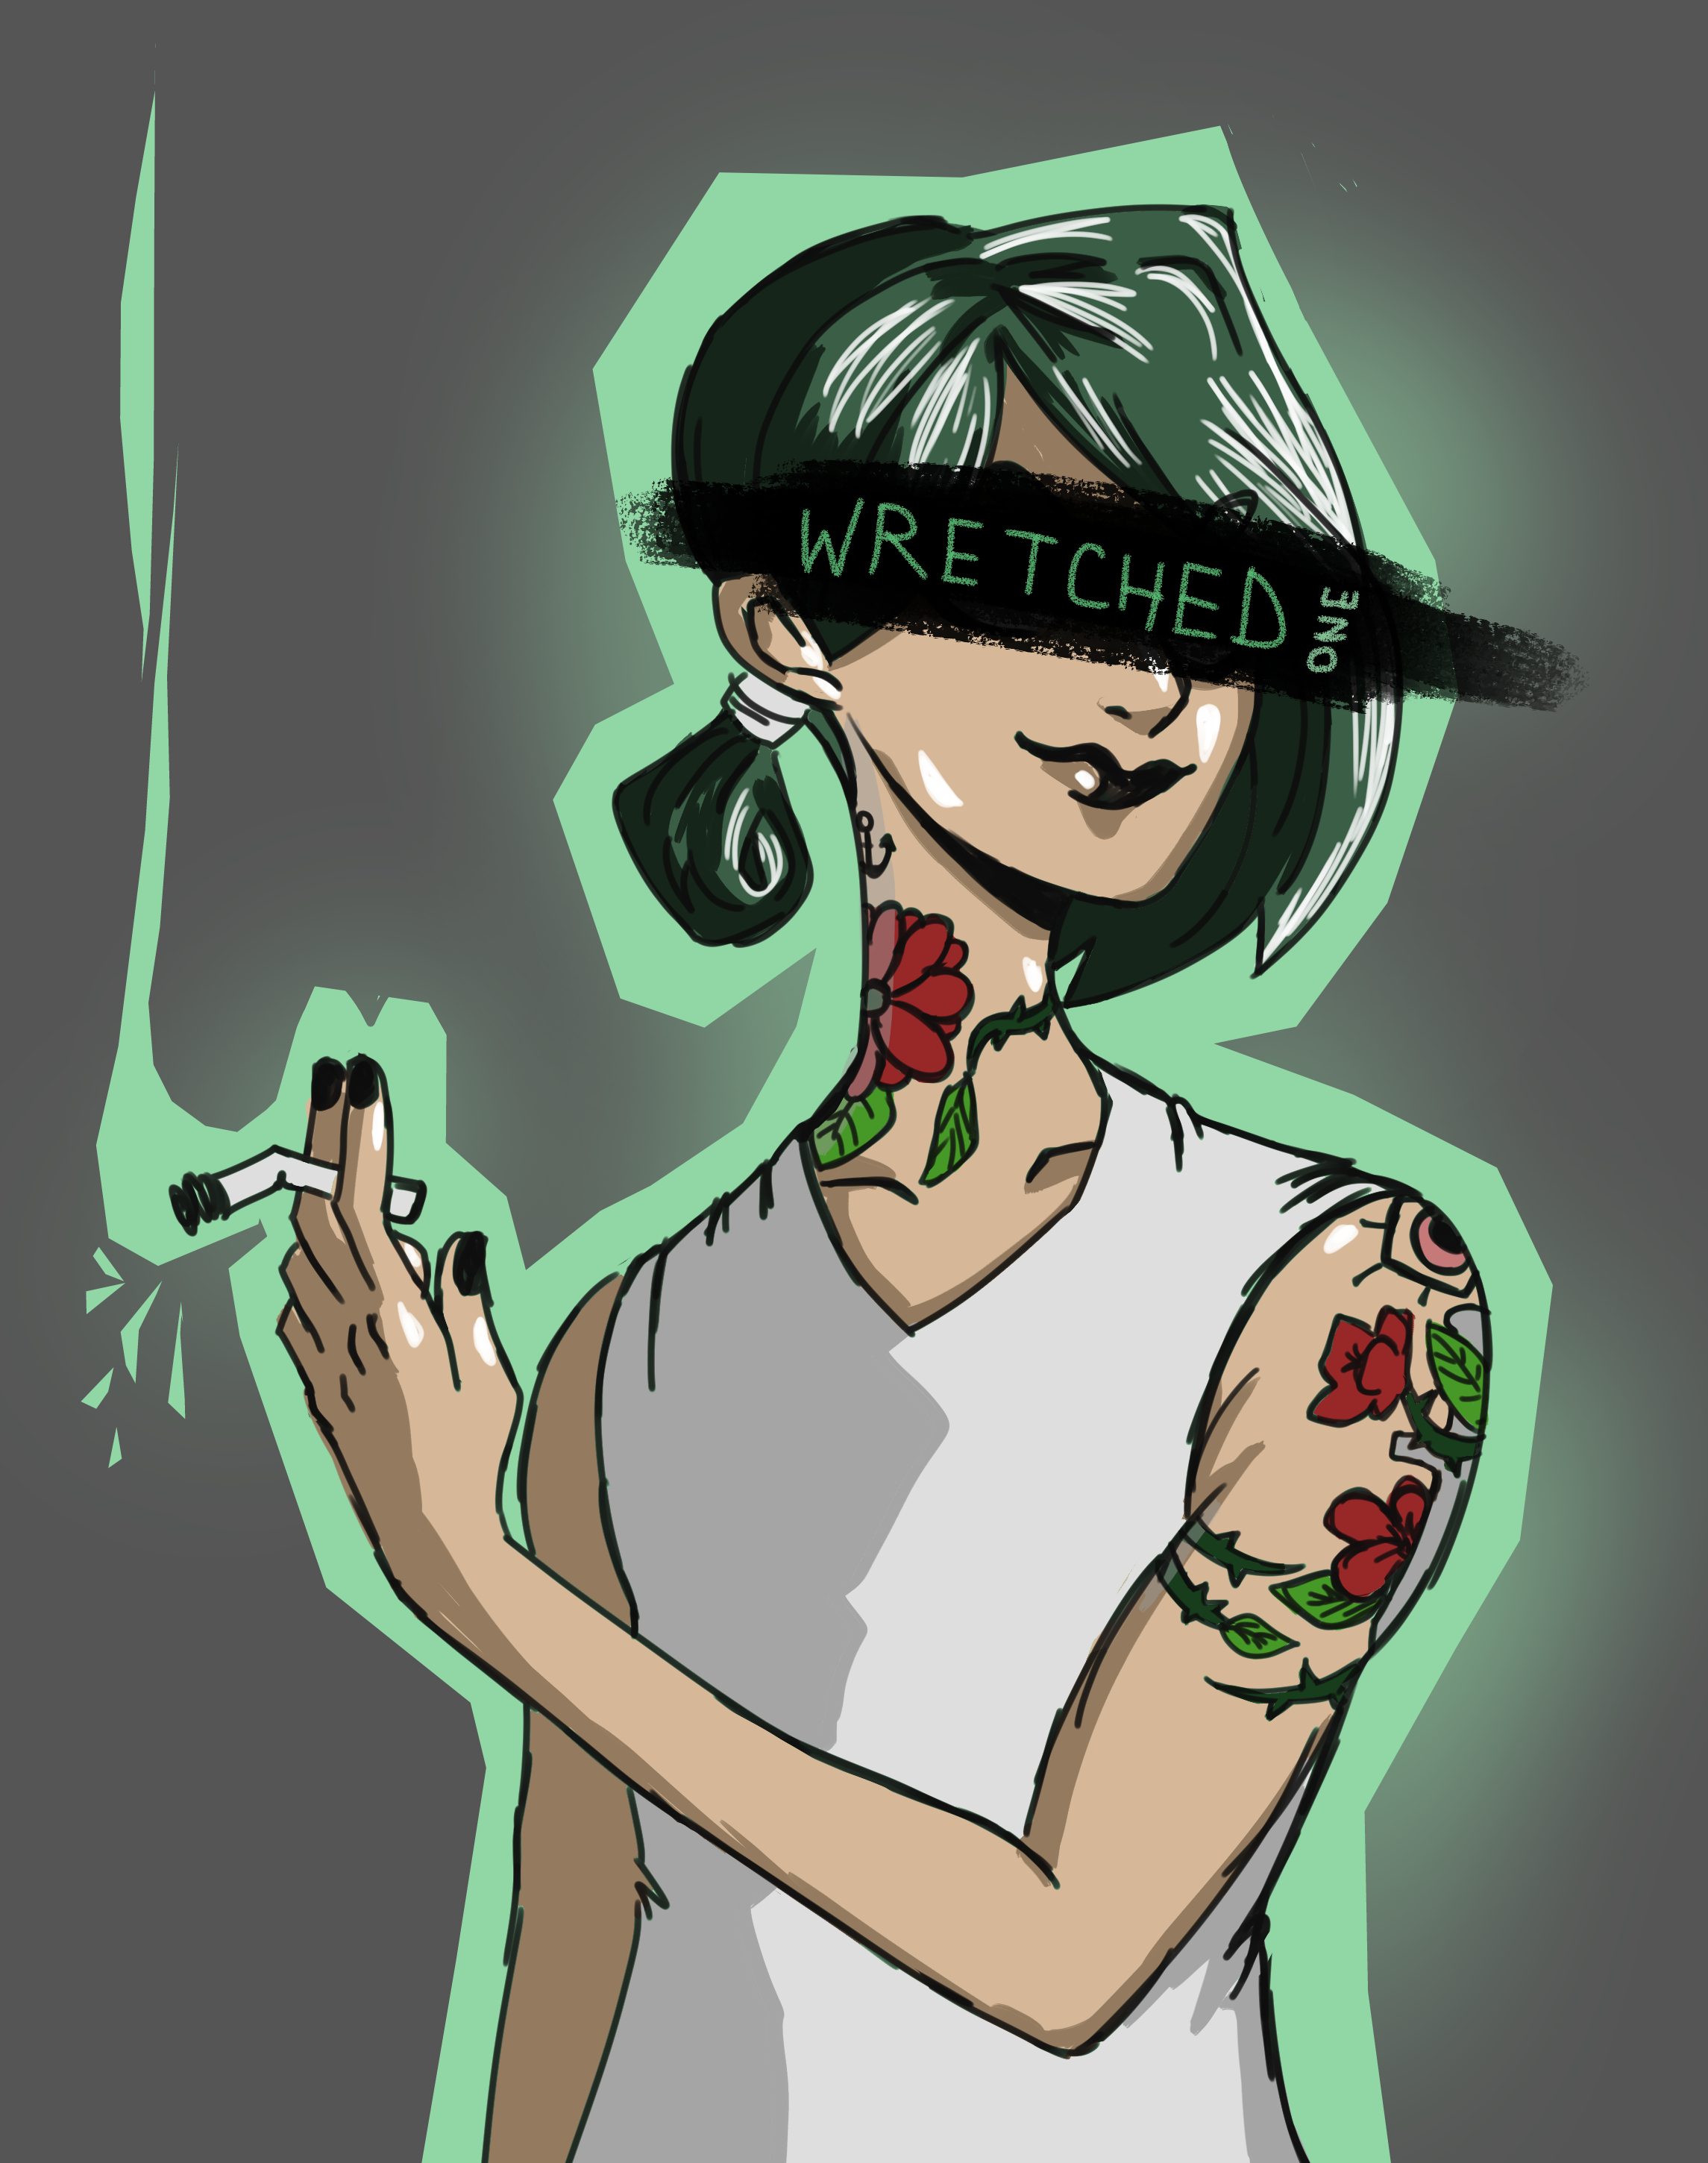 Wretched1